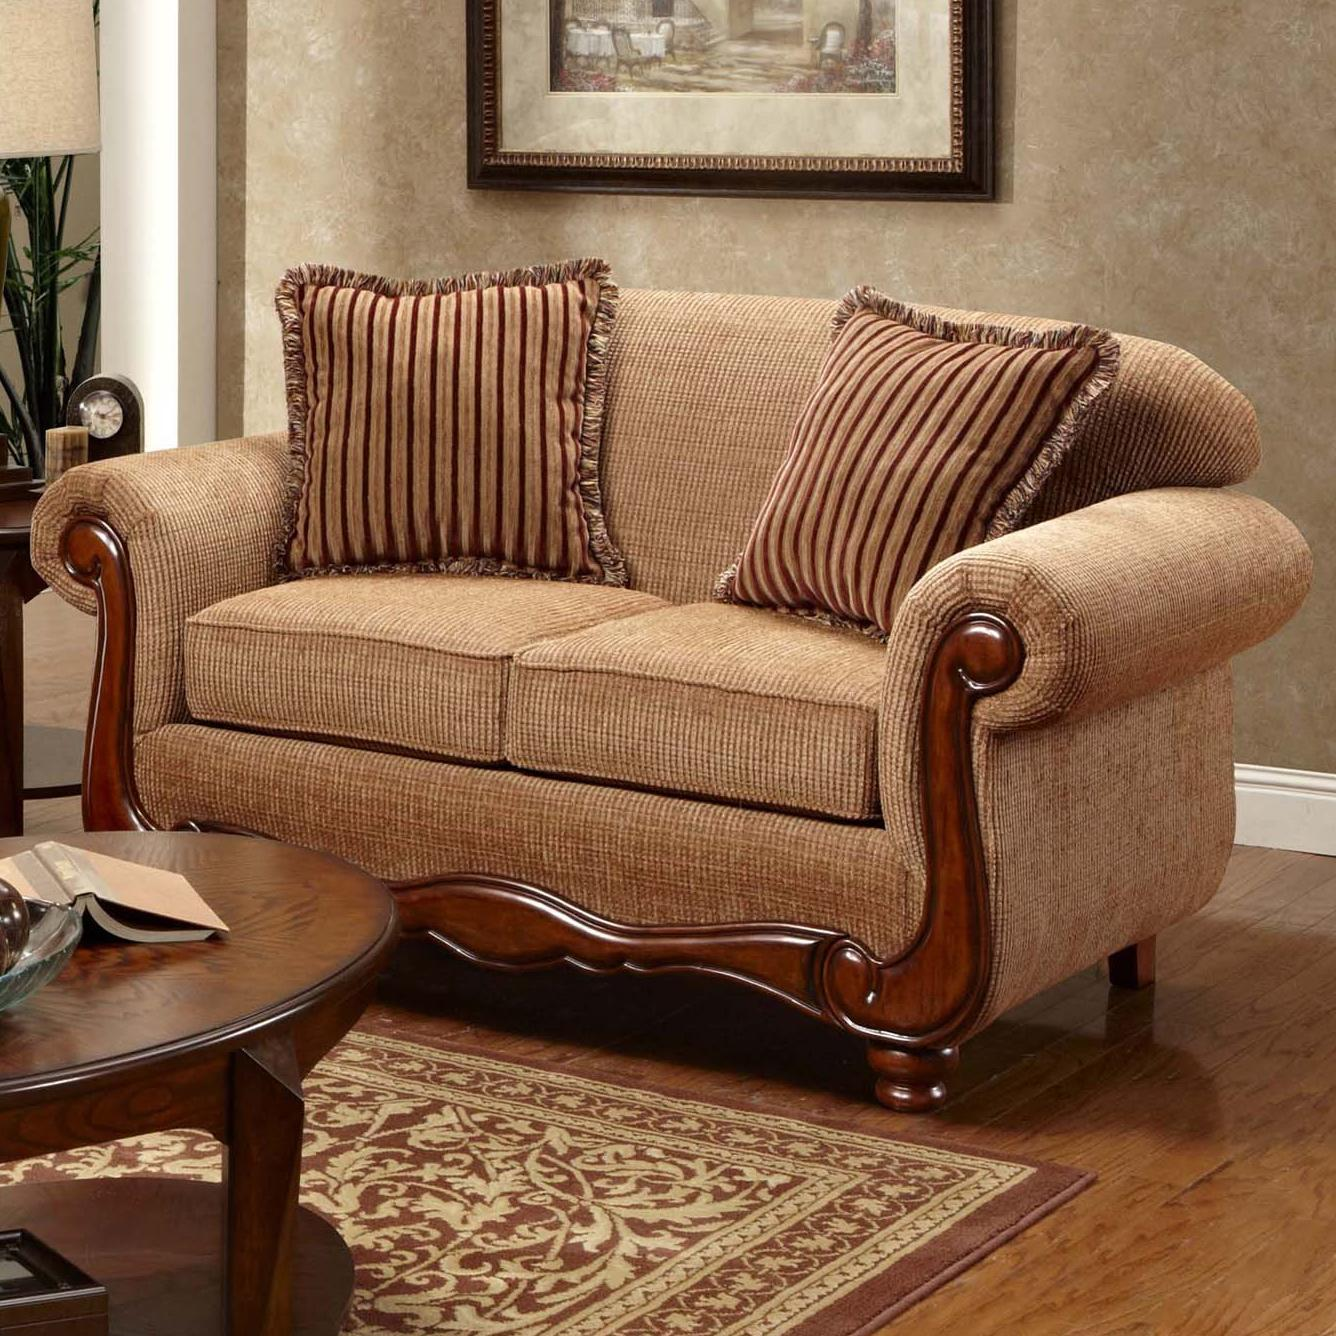 Washington Furniture 1000 Traditional Love Seat With Rolled Arms Del Sol Furniture Love Seat